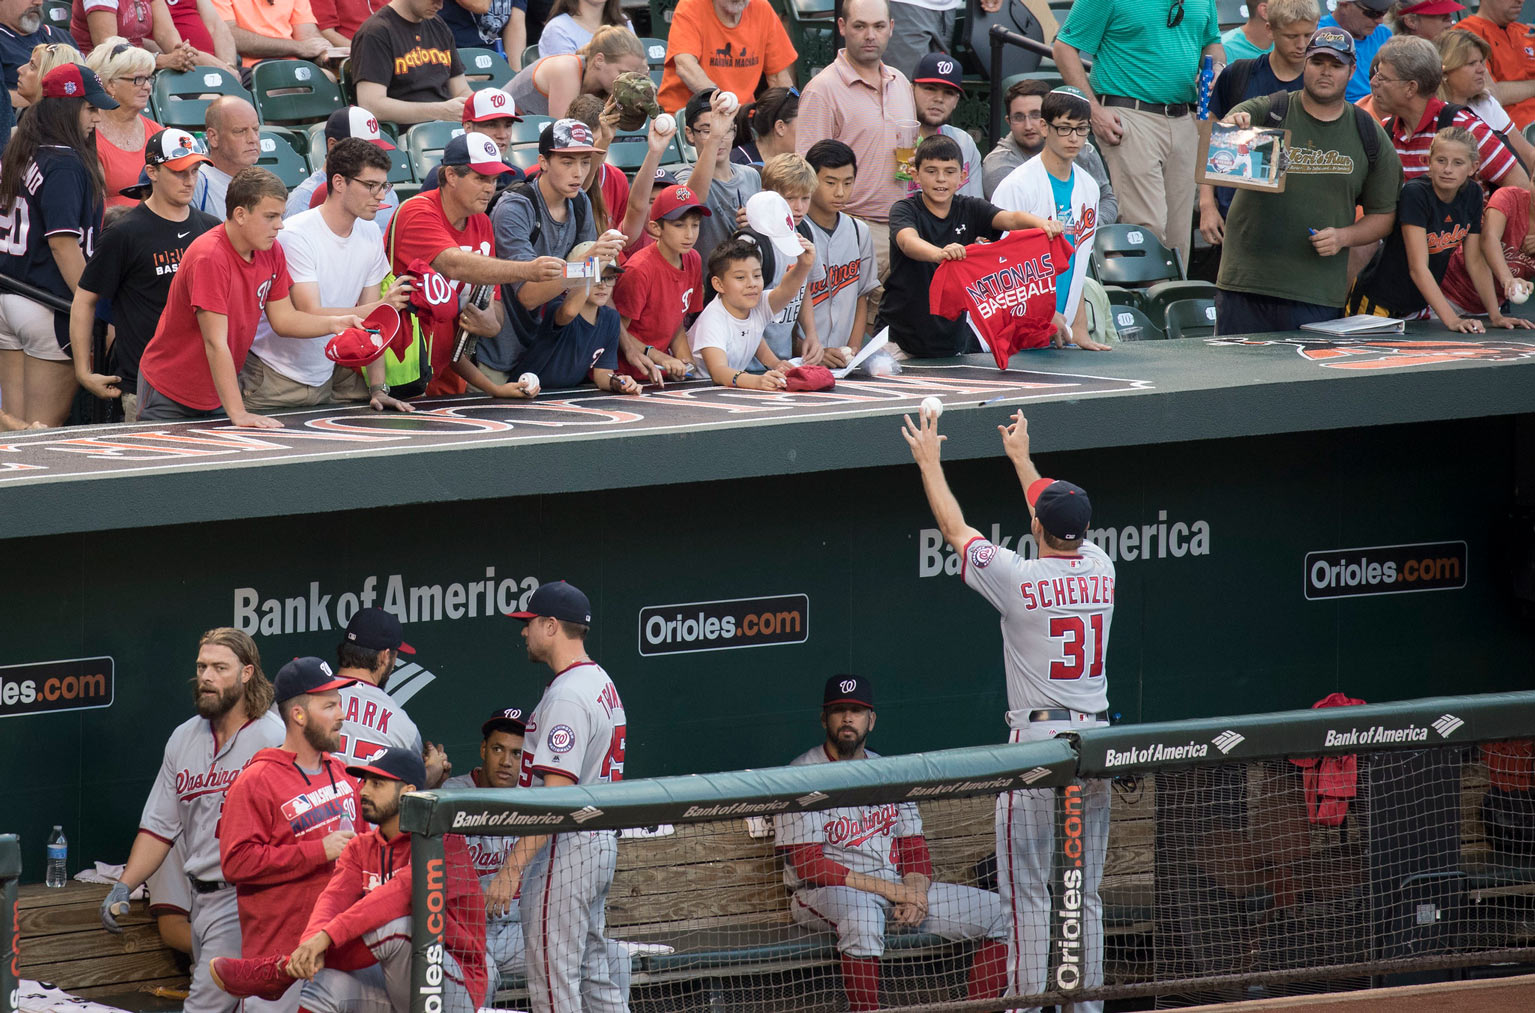 Paying Attention To Foul Balls Is Not Enough